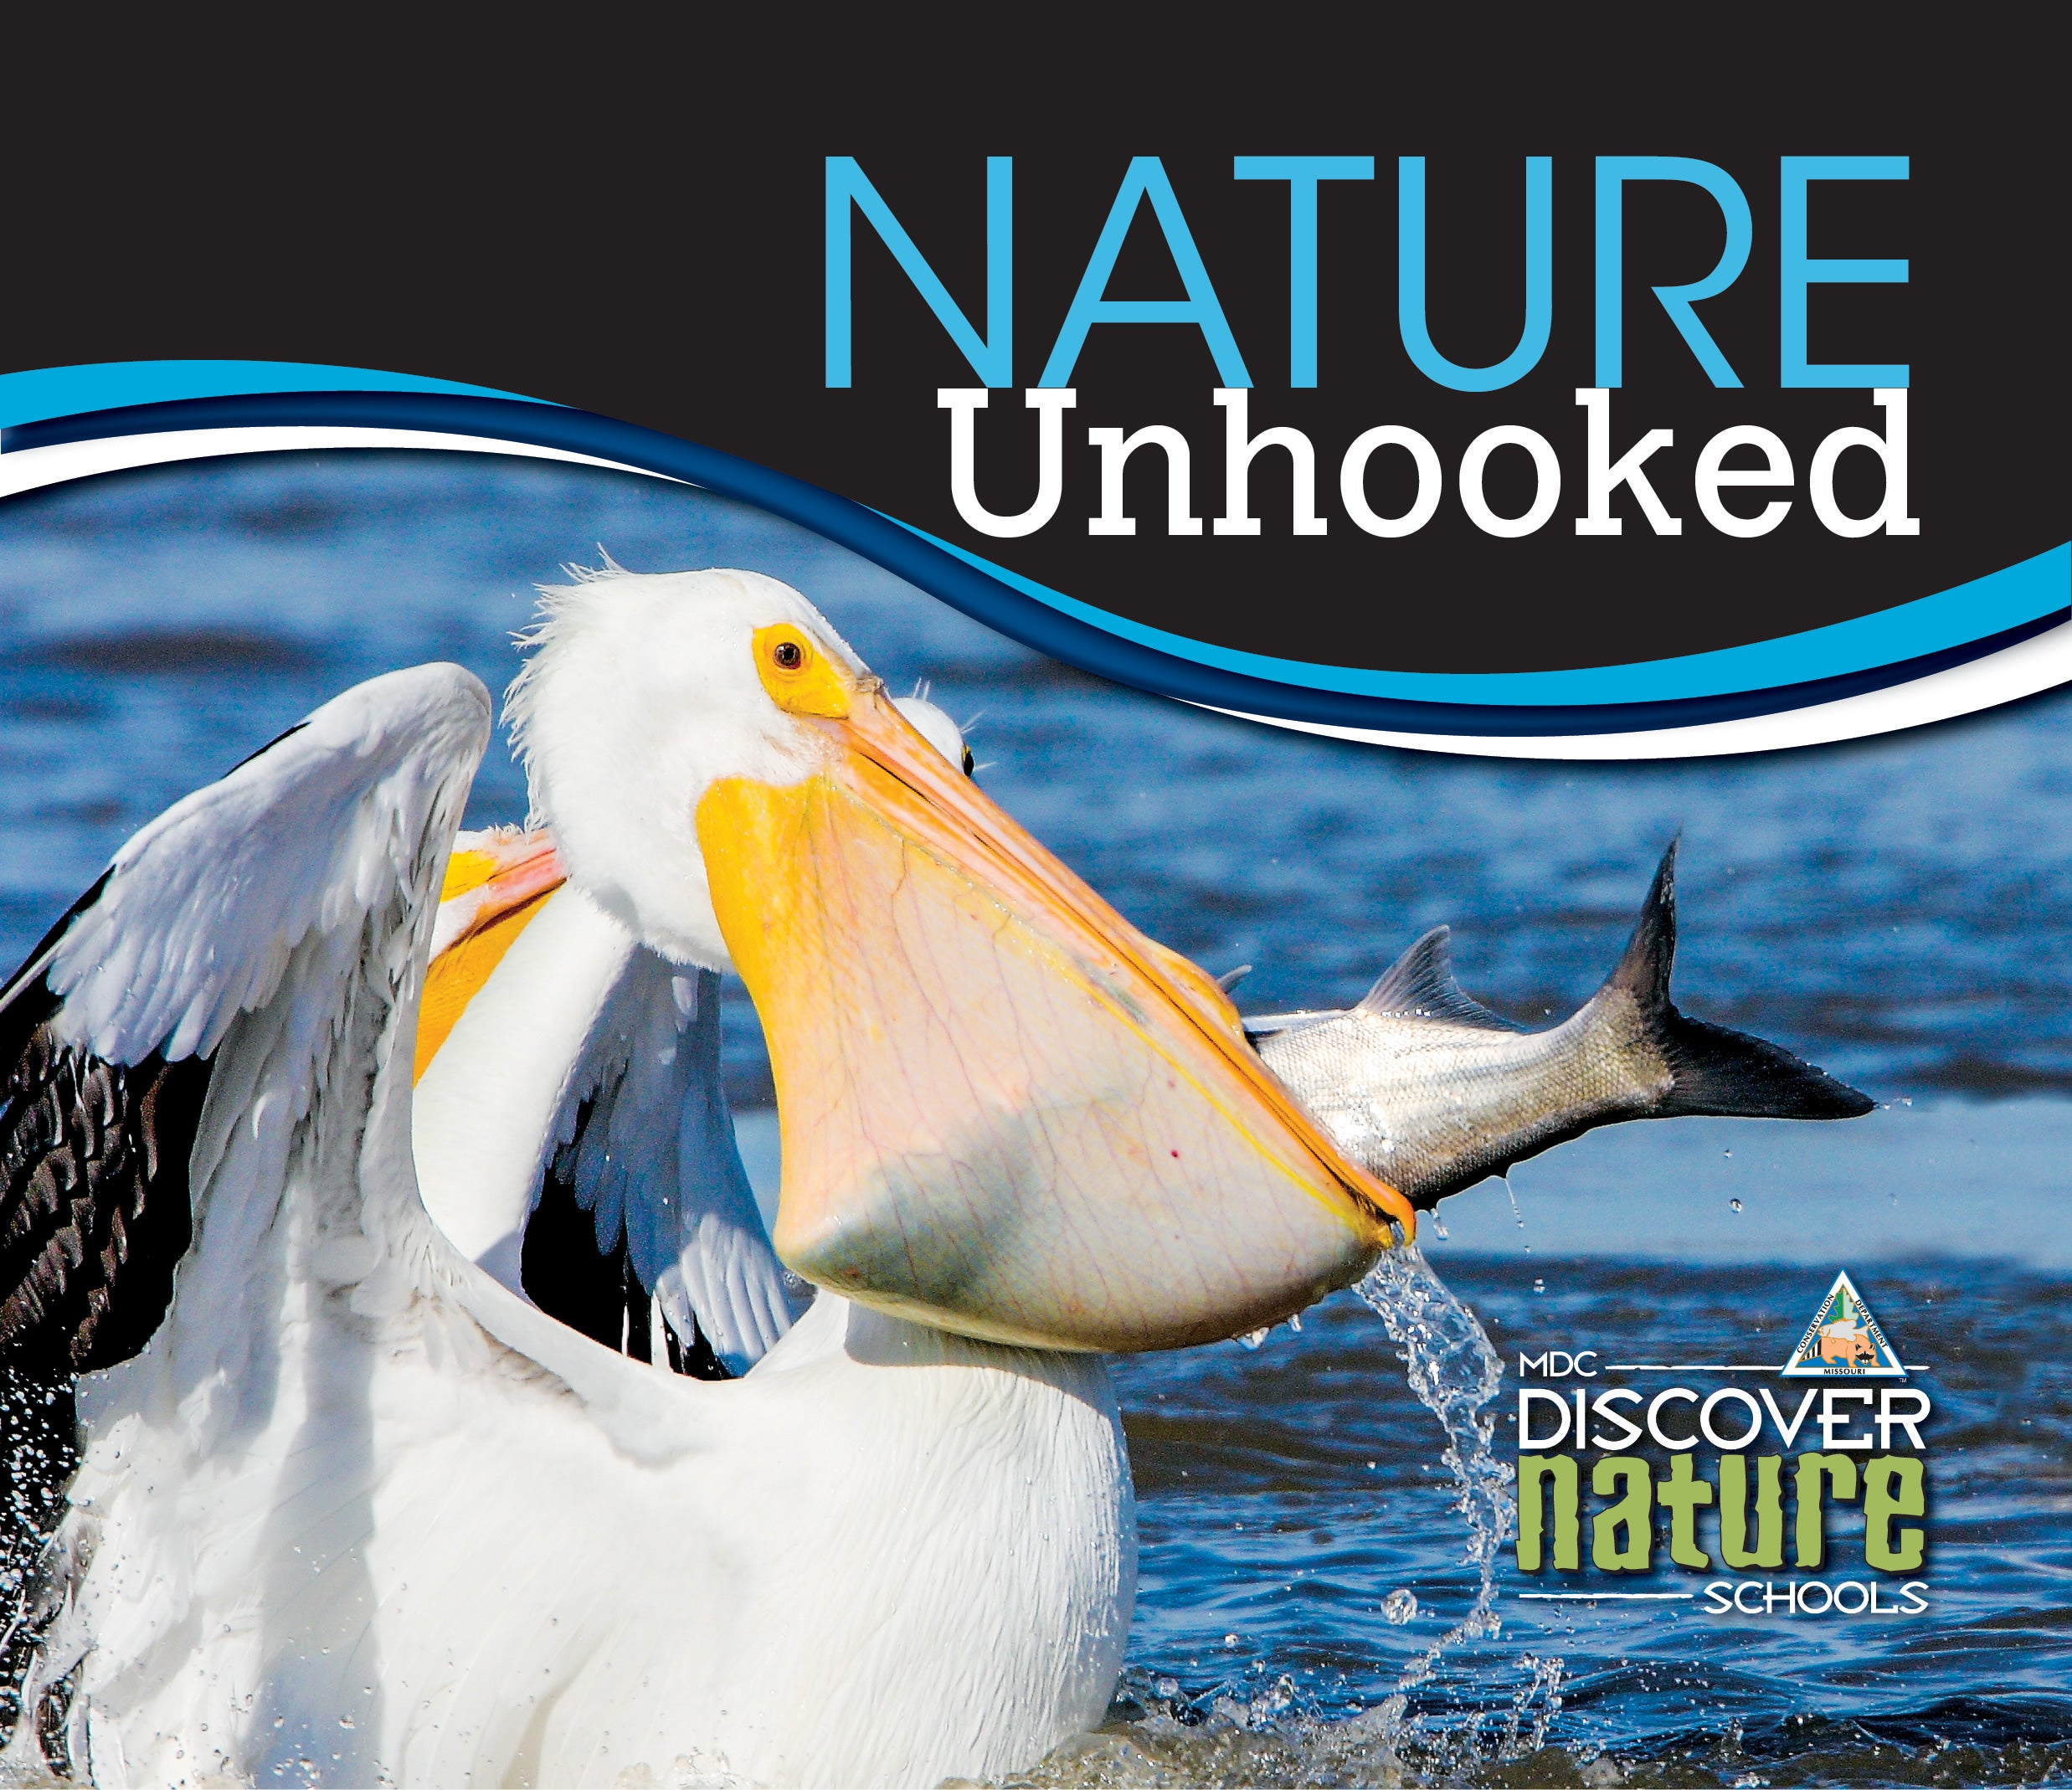 Nature Unhooked